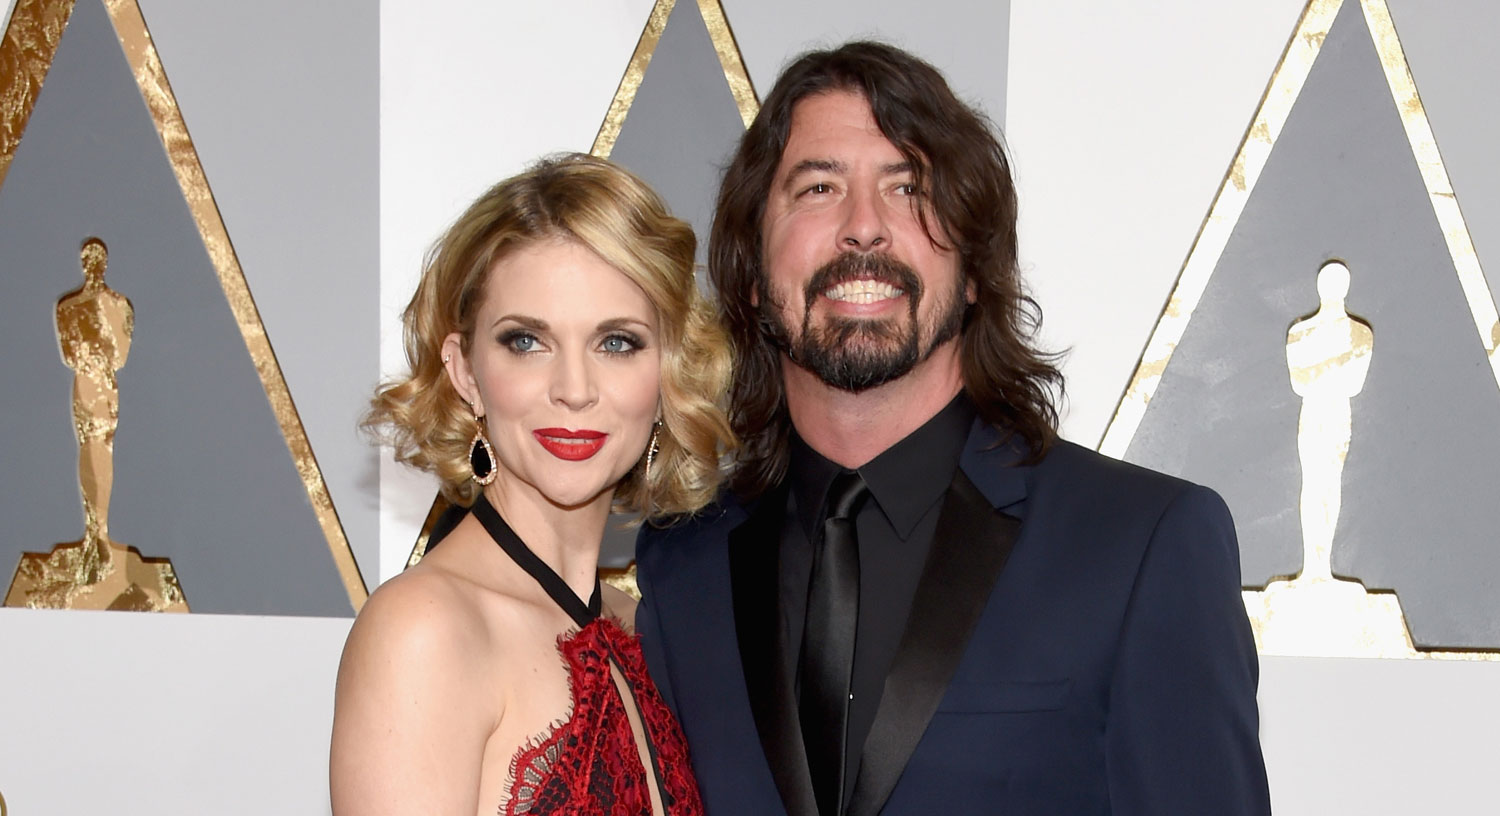 dave grohl attends oscars 2016 with wife jordyn blum